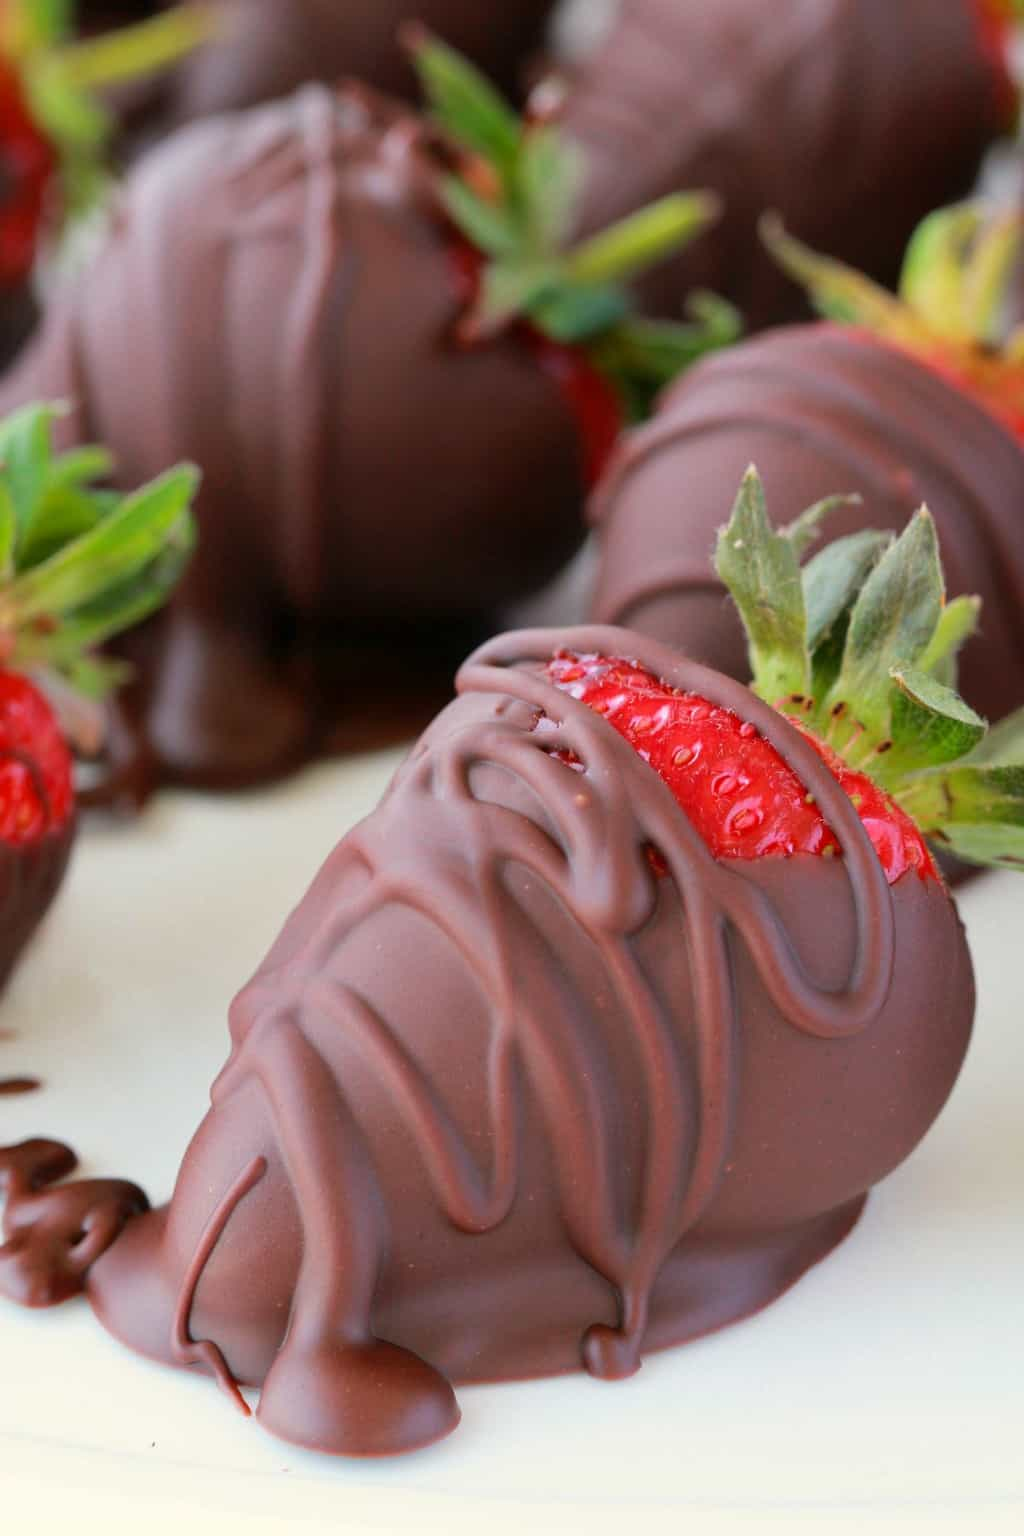 Vegan chocolate covered strawberries on parchment paper.